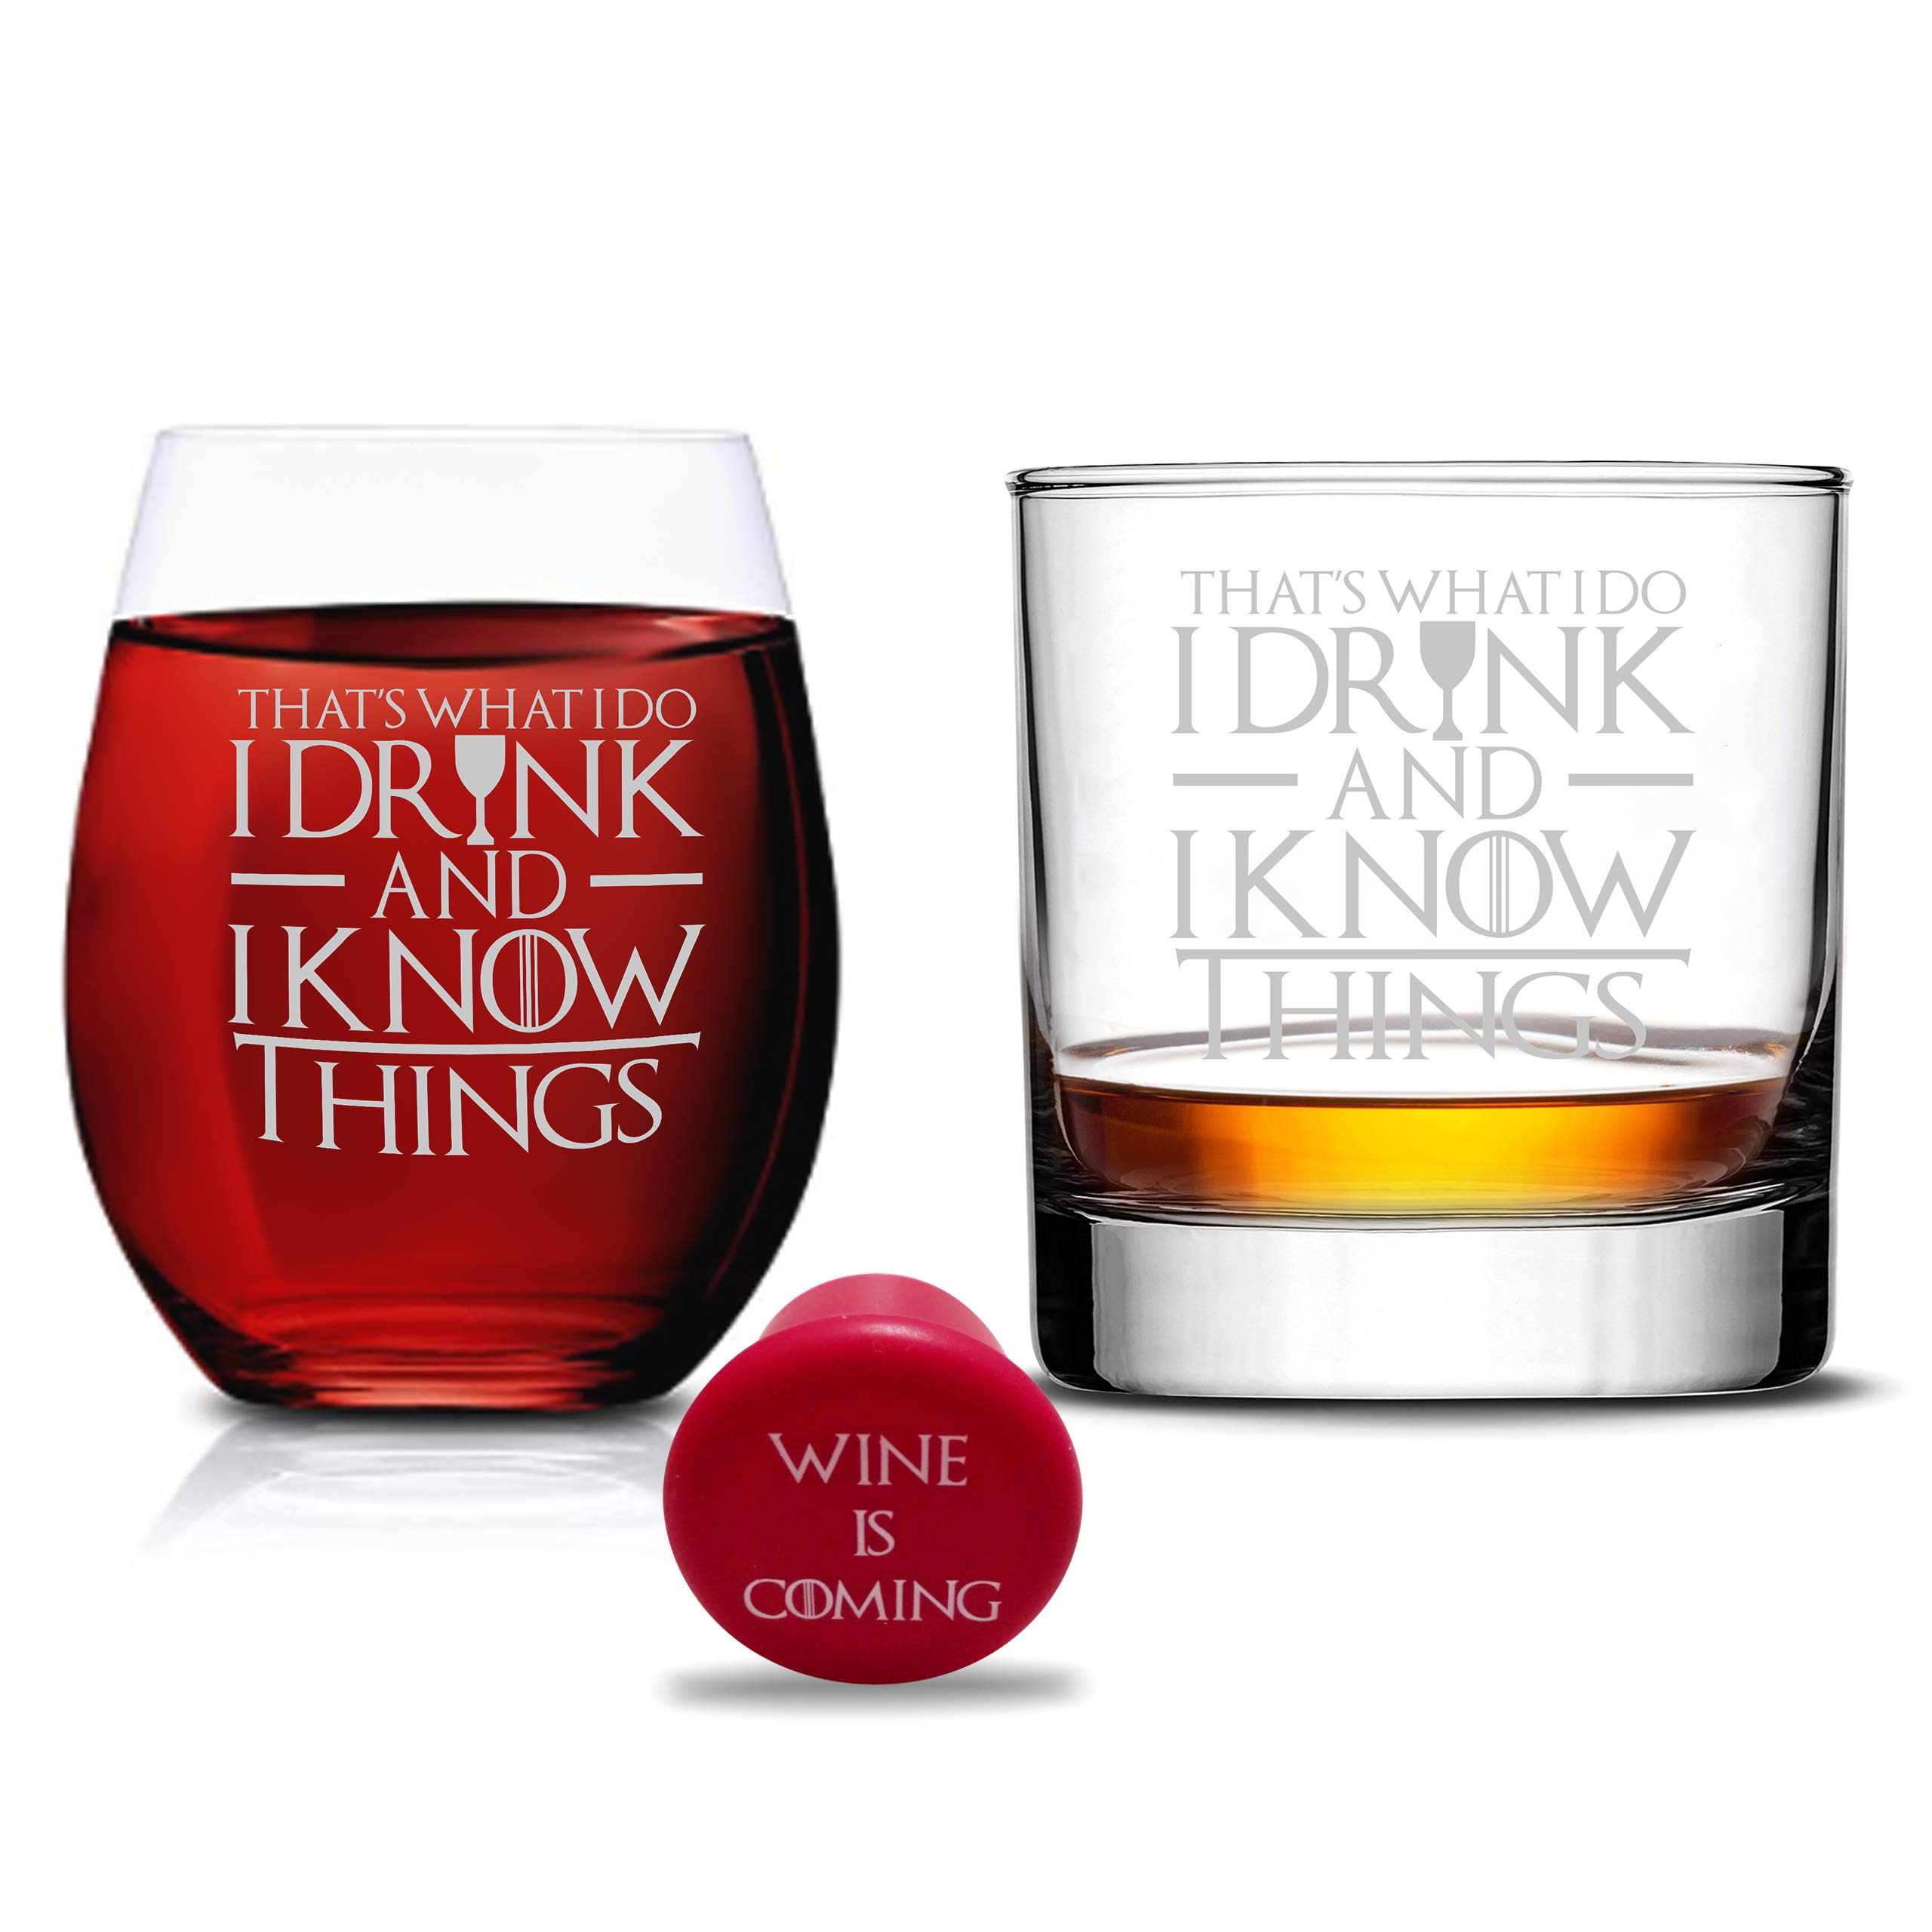 Game Of Thrones Glasses - I Drink and I know Things Whiskey Highball and I Drink and I Know Things Wine Glass - Set of 2 -